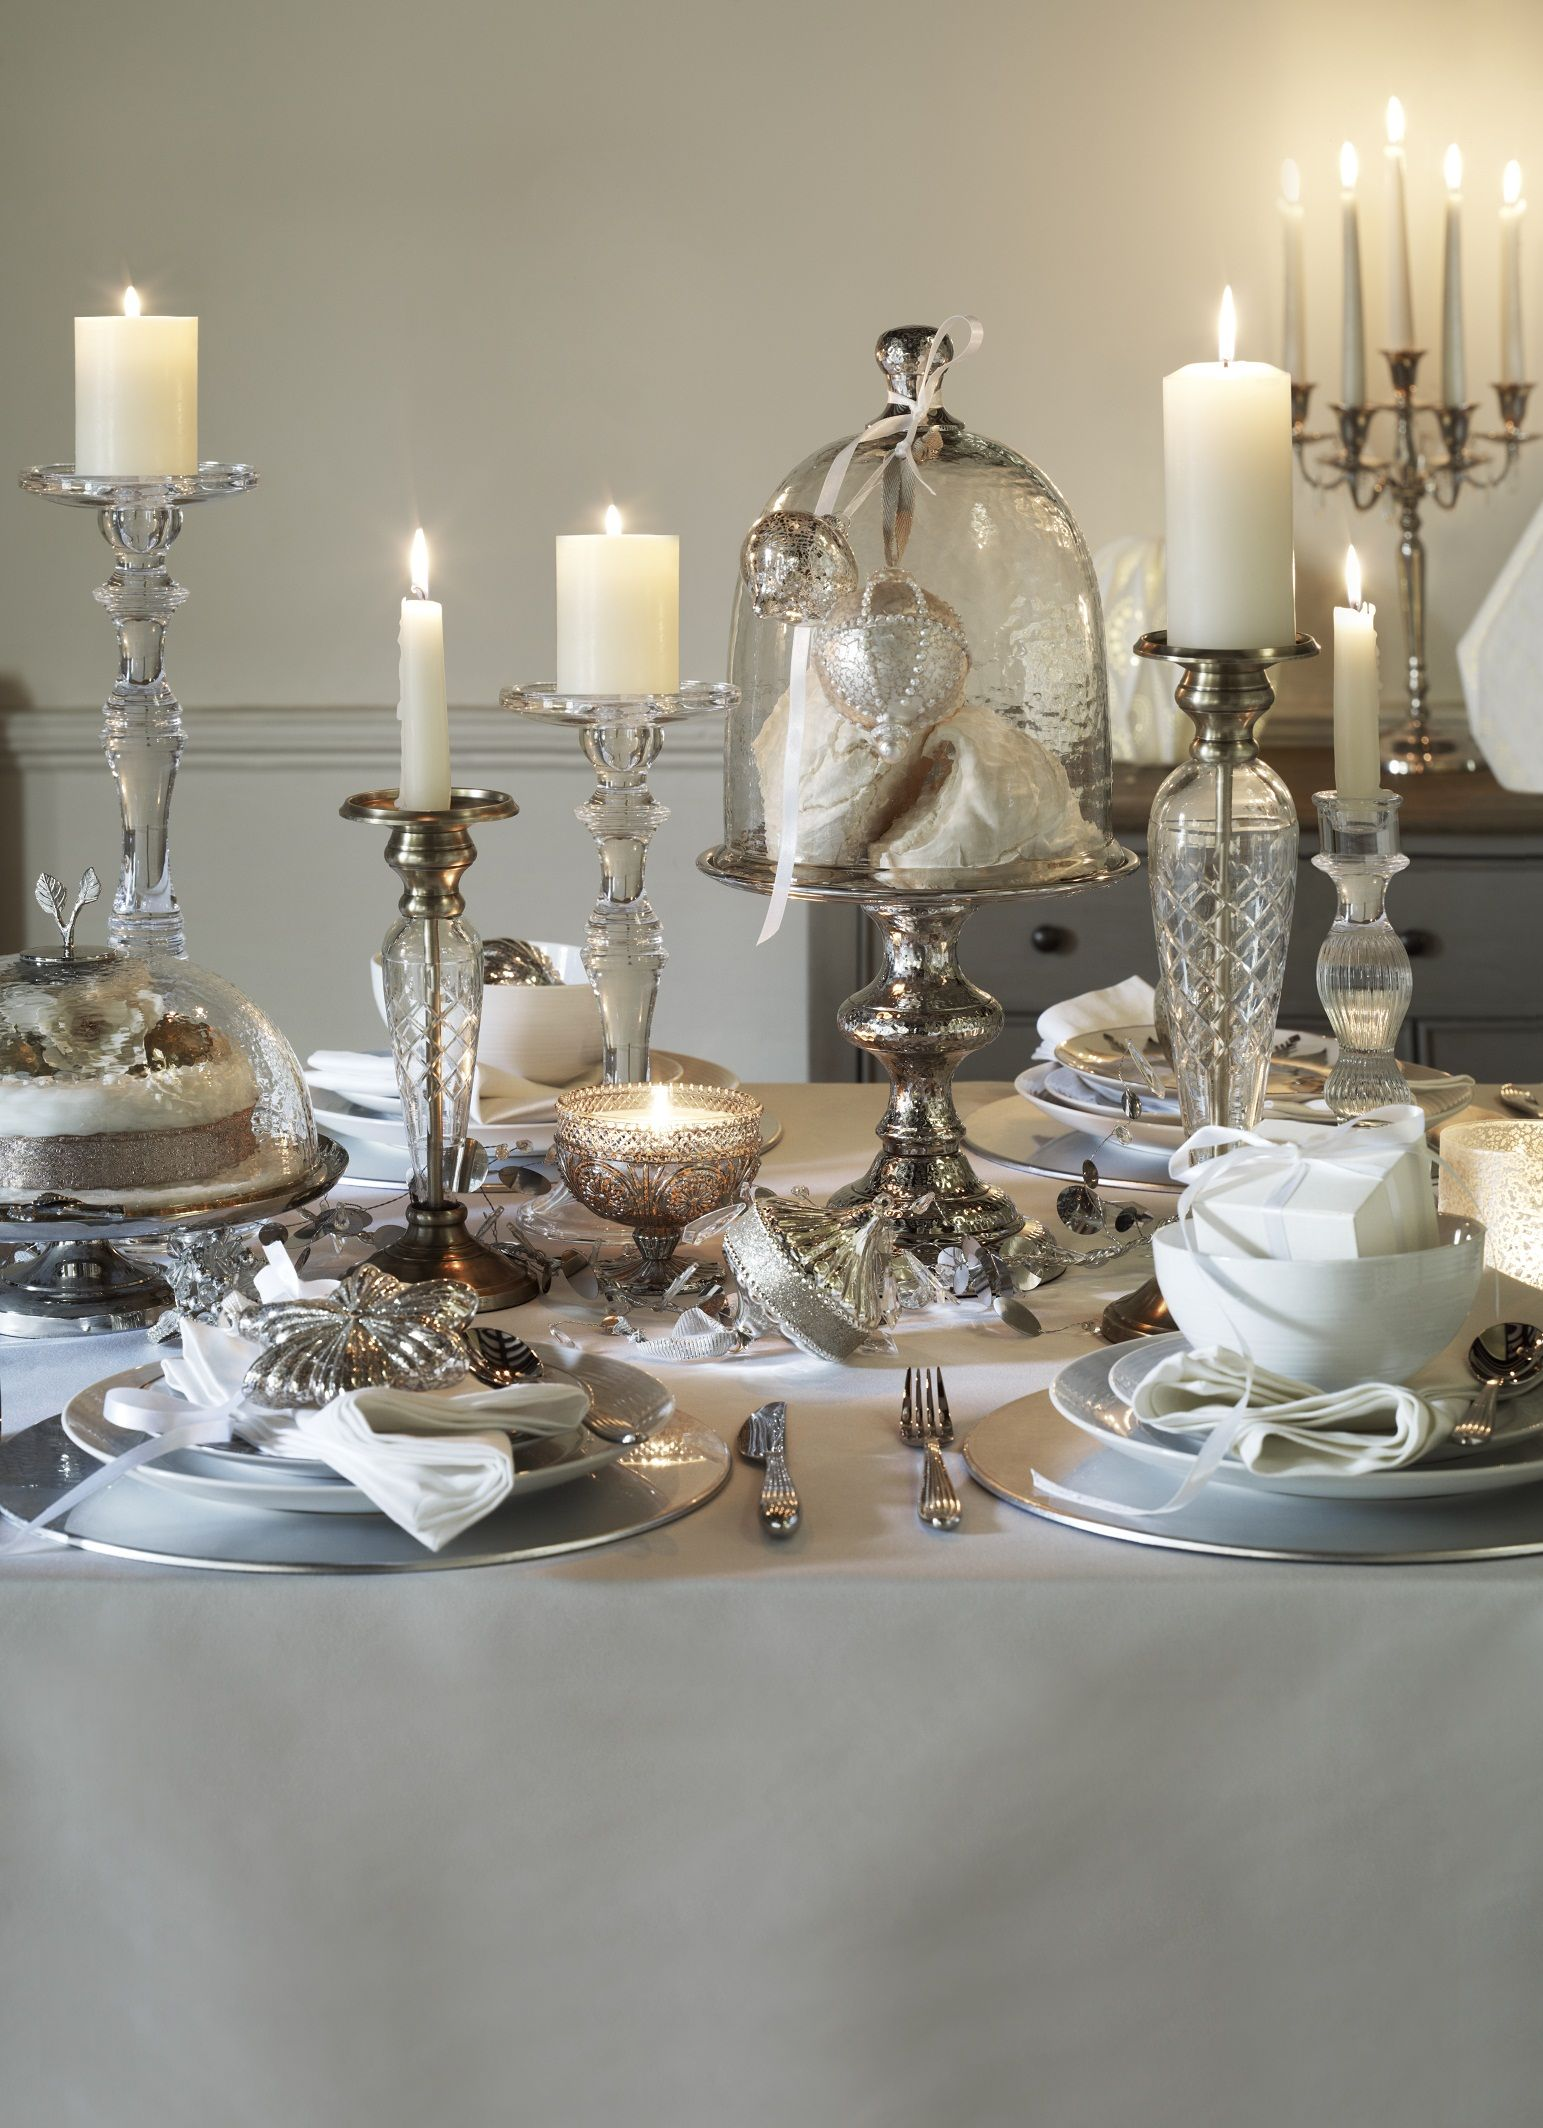 Decorate Your Dining Table With Elegant Candles And Silver Decor Opt For Matching Dining Sets T Christmas Table Settings Christmas Table Christmas Dining Room